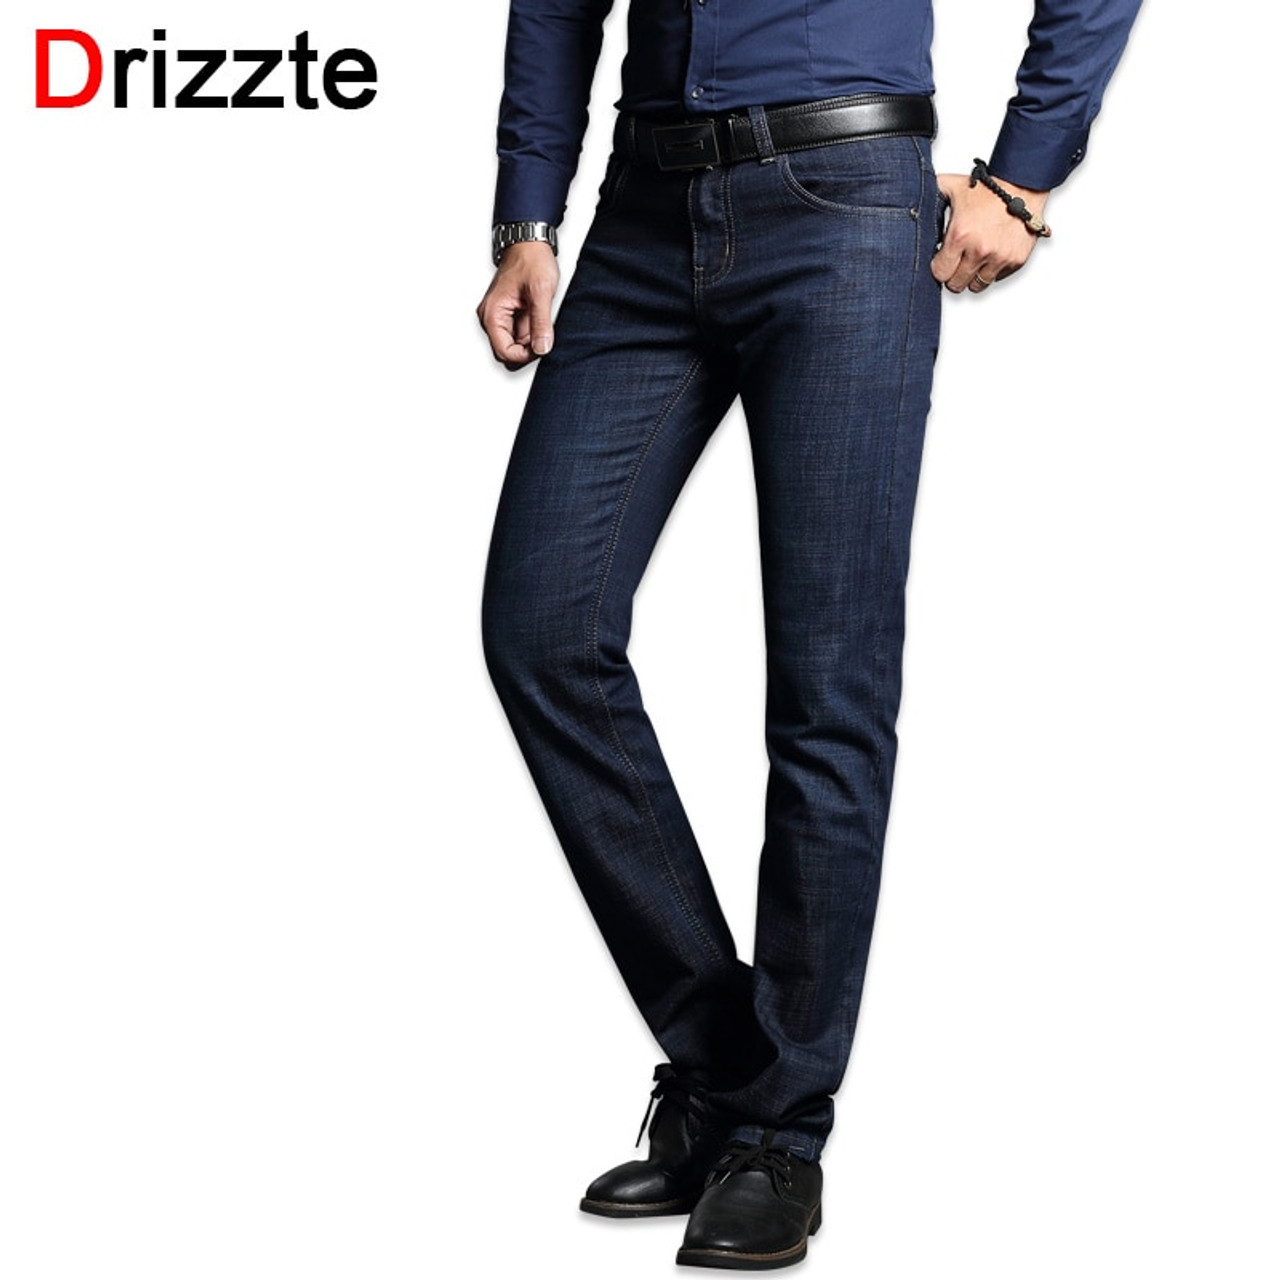 746b46e2 Drizzte Men's Jeans Blue Denim Business Stragiht Silm Fit Jeans Size 30 32  34 35 36 38 Pants Jean for Men - OnshopDeals.Com